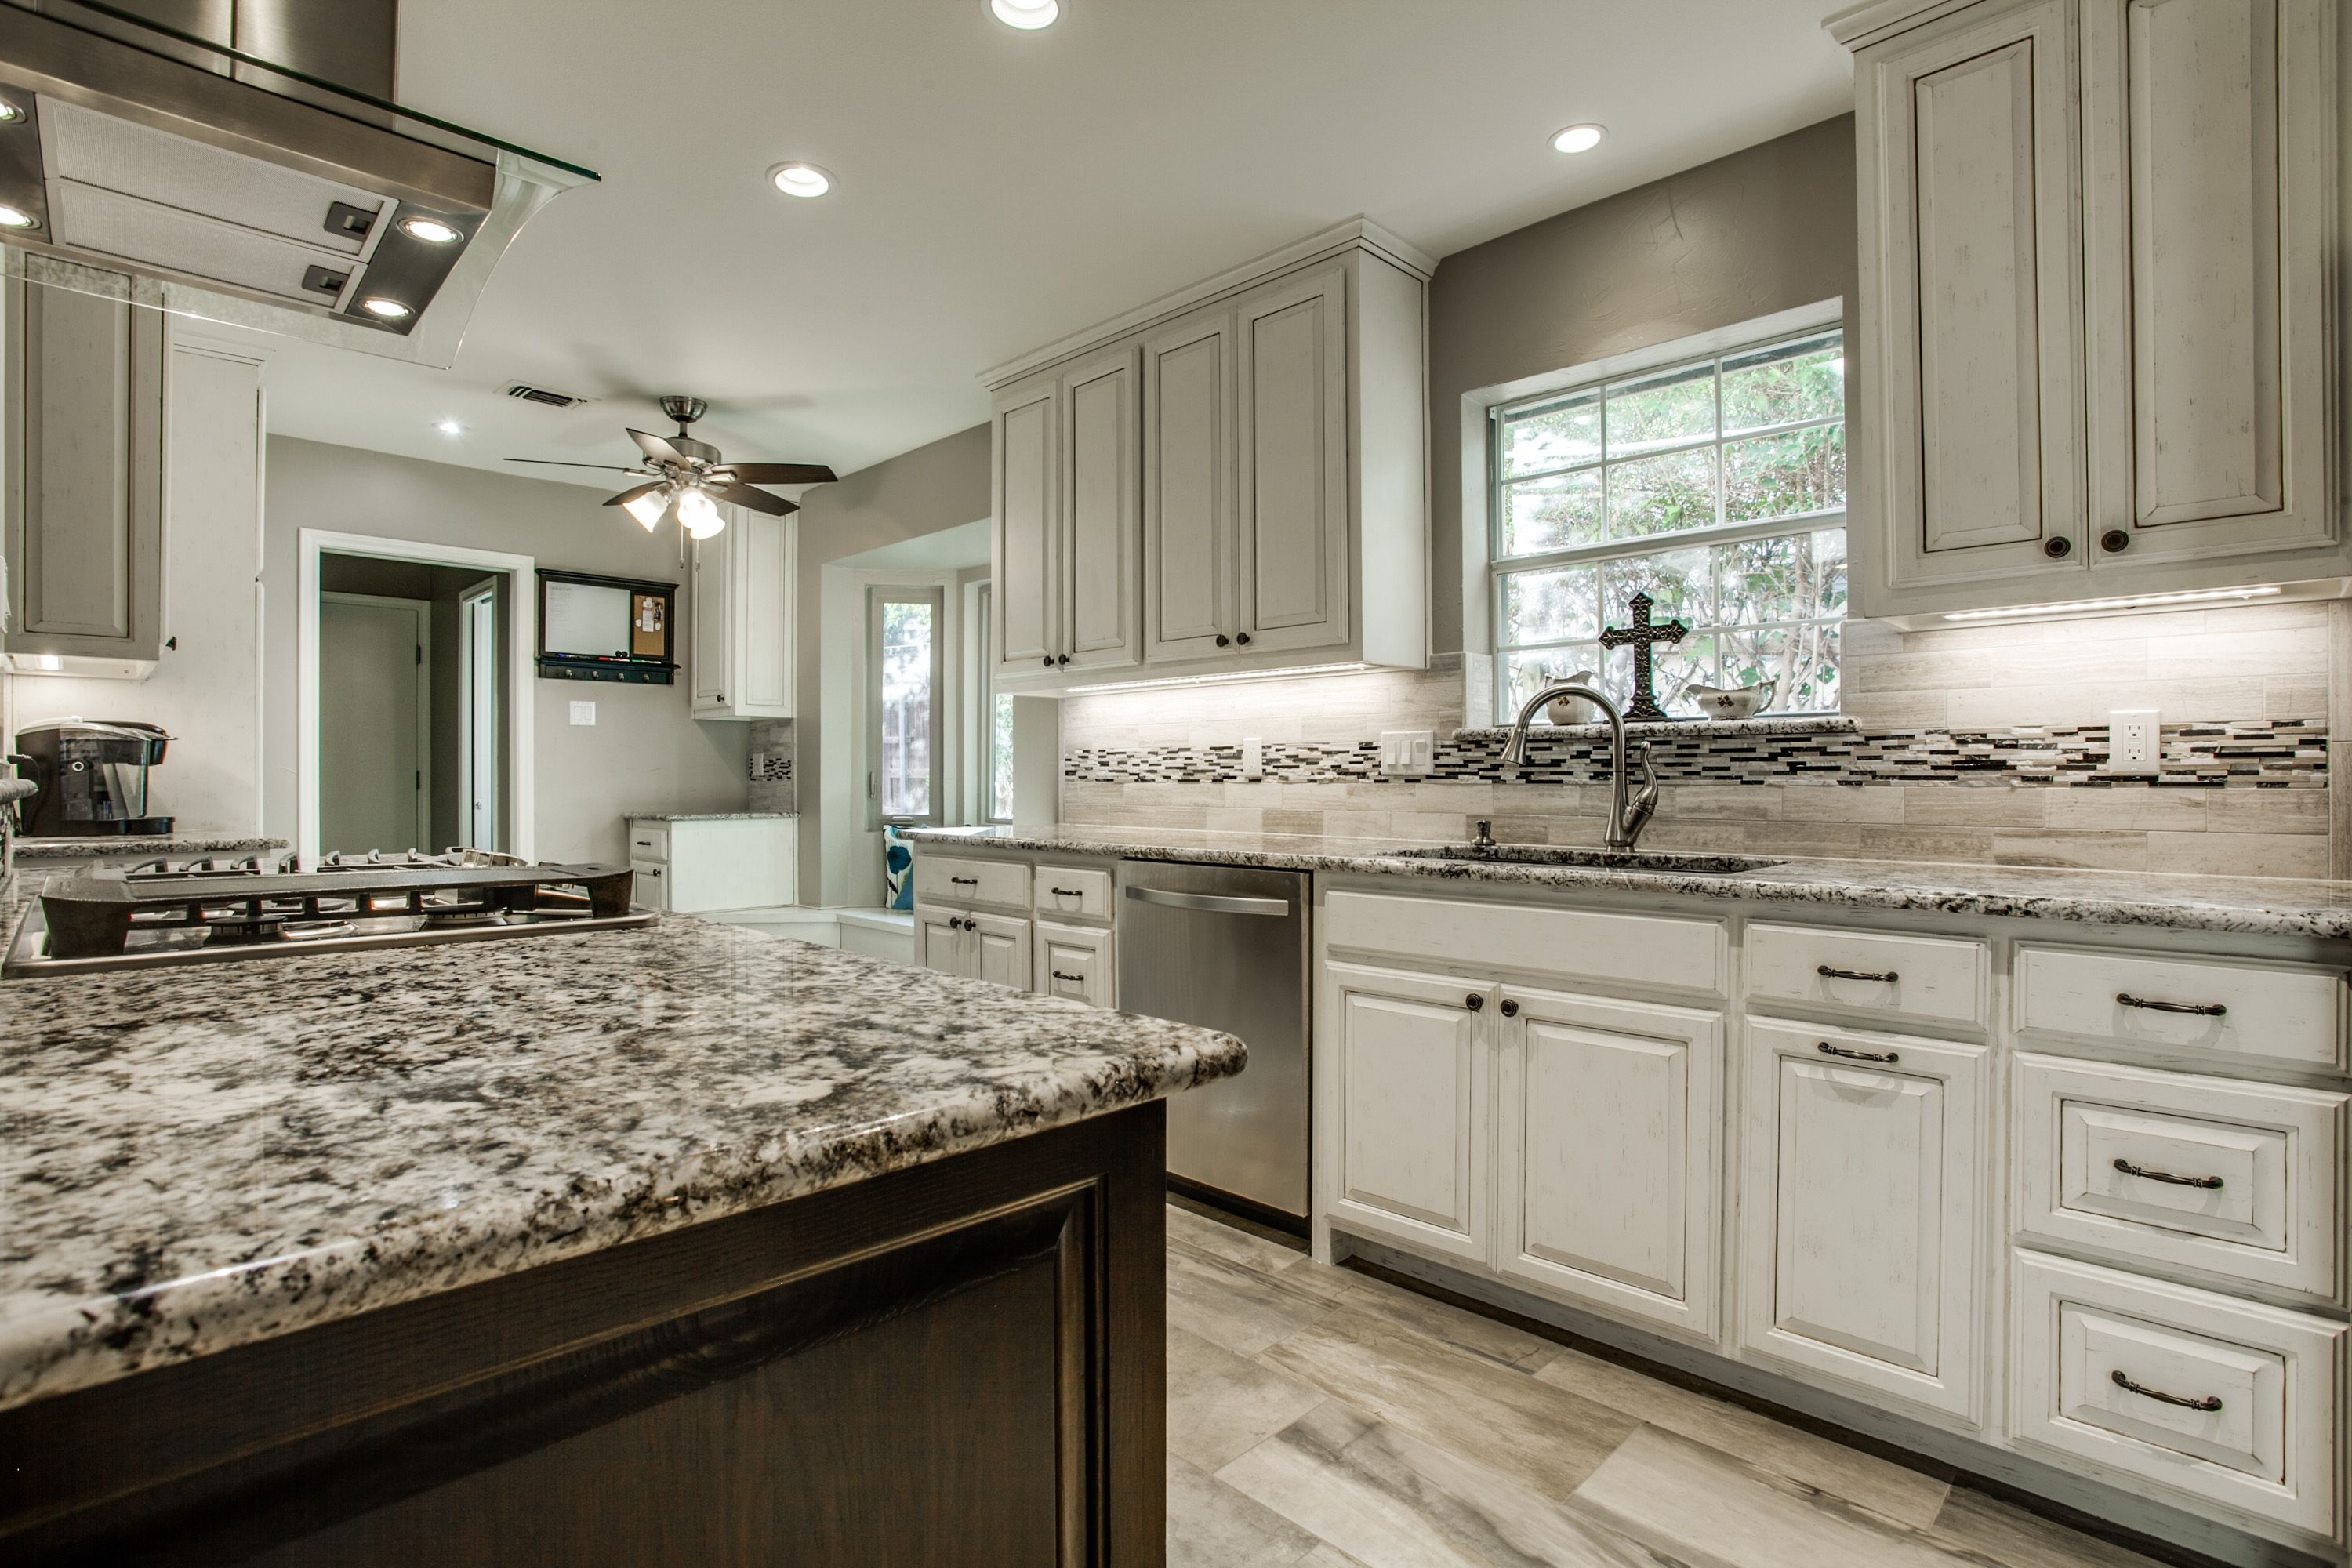 Another view of My BEAUTIFUL Kitchen!